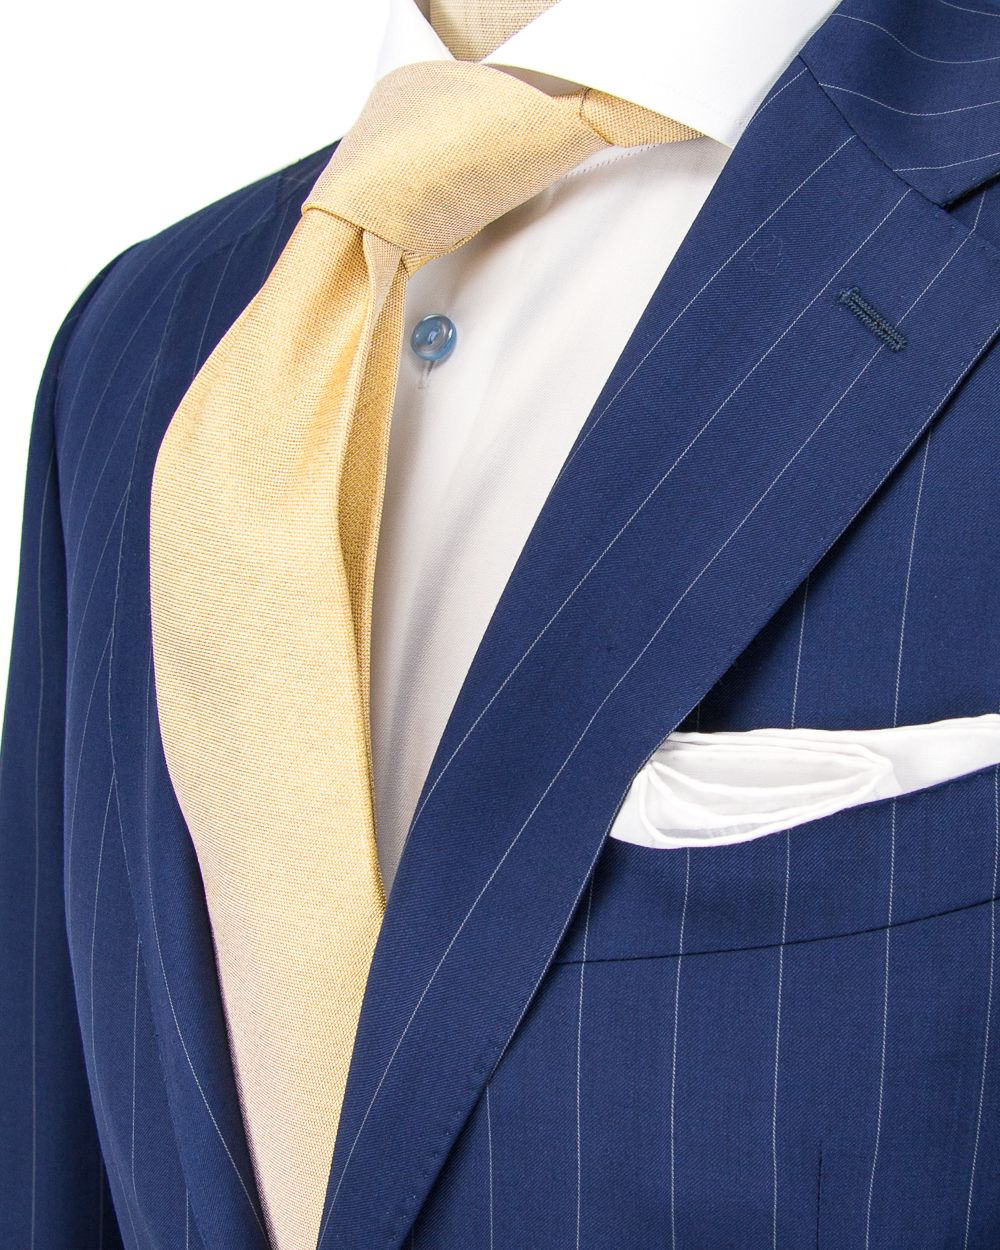 canali suits - Google Search